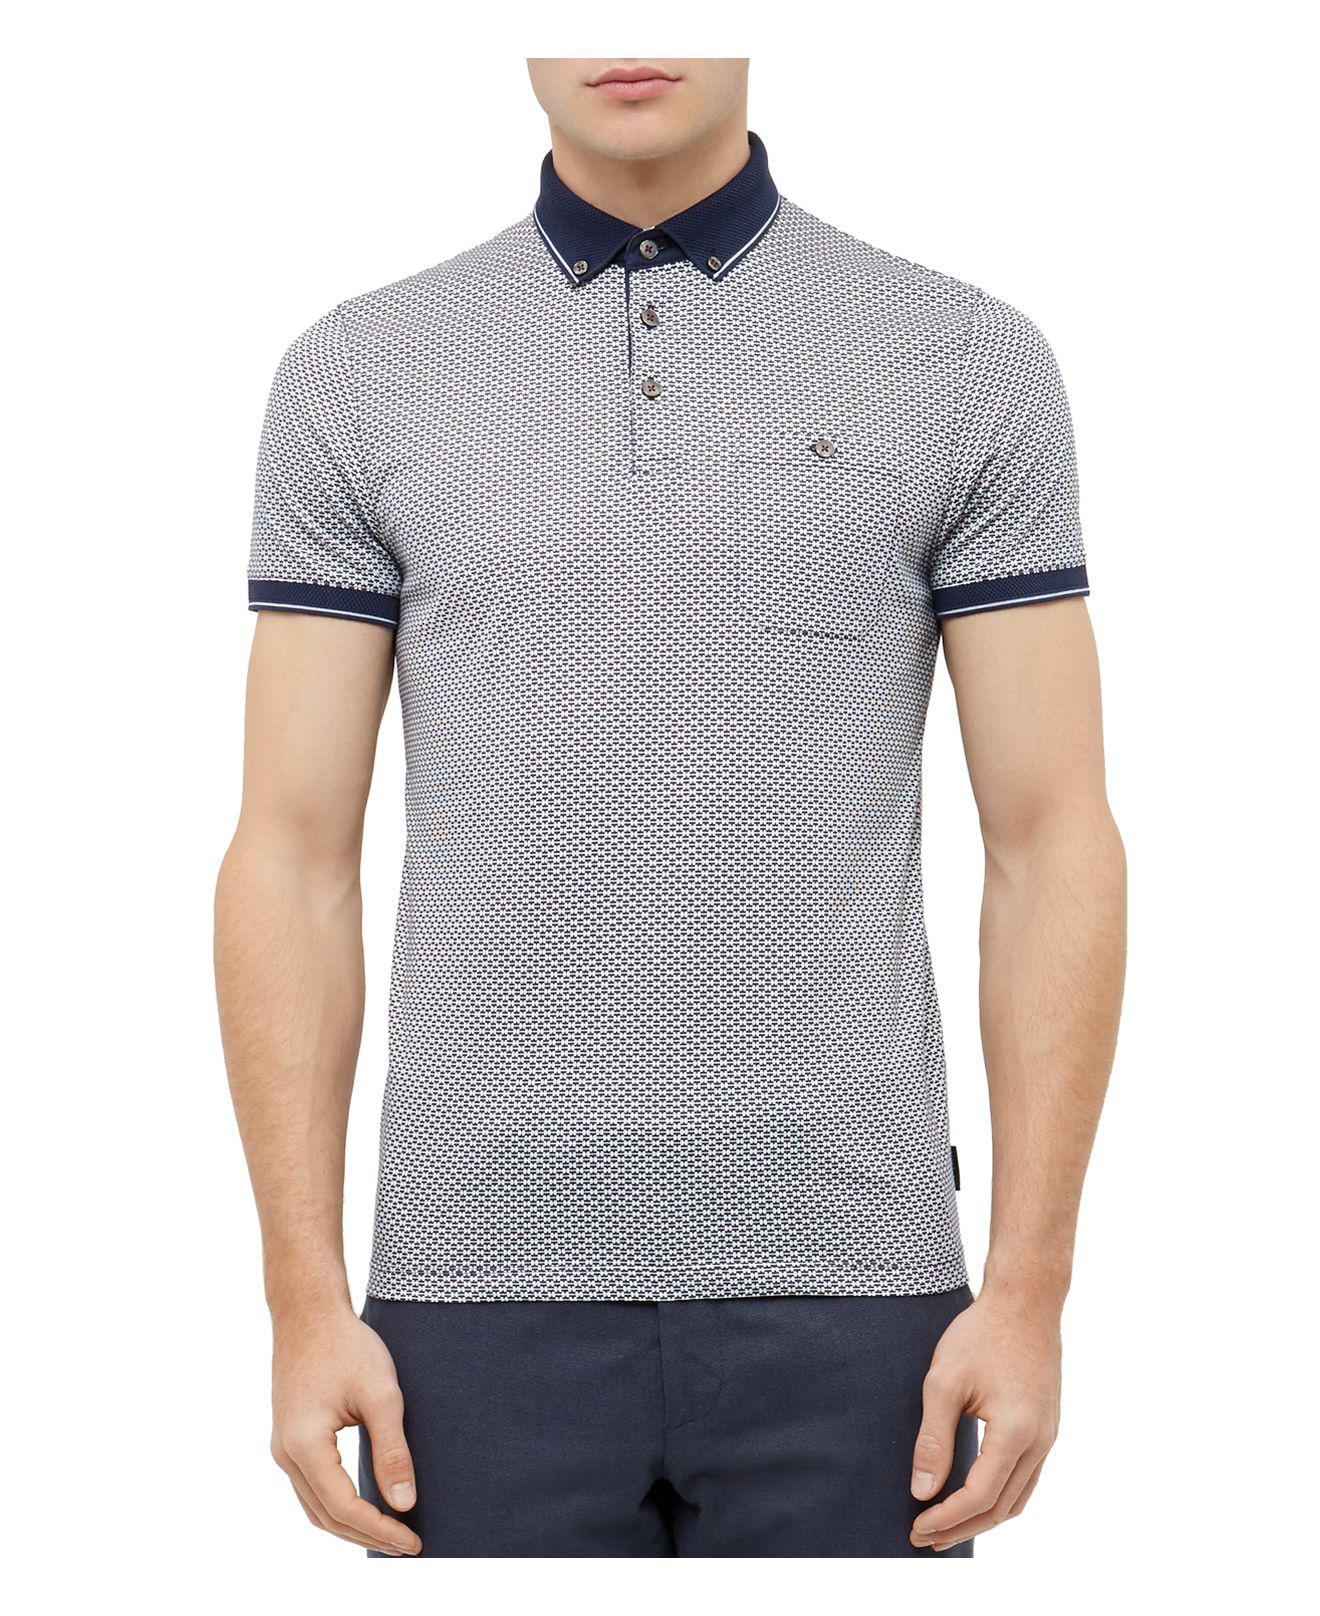 7bfc45a6f Lyst - Ted Baker Enders Regular Fit Polo in Blue for Men